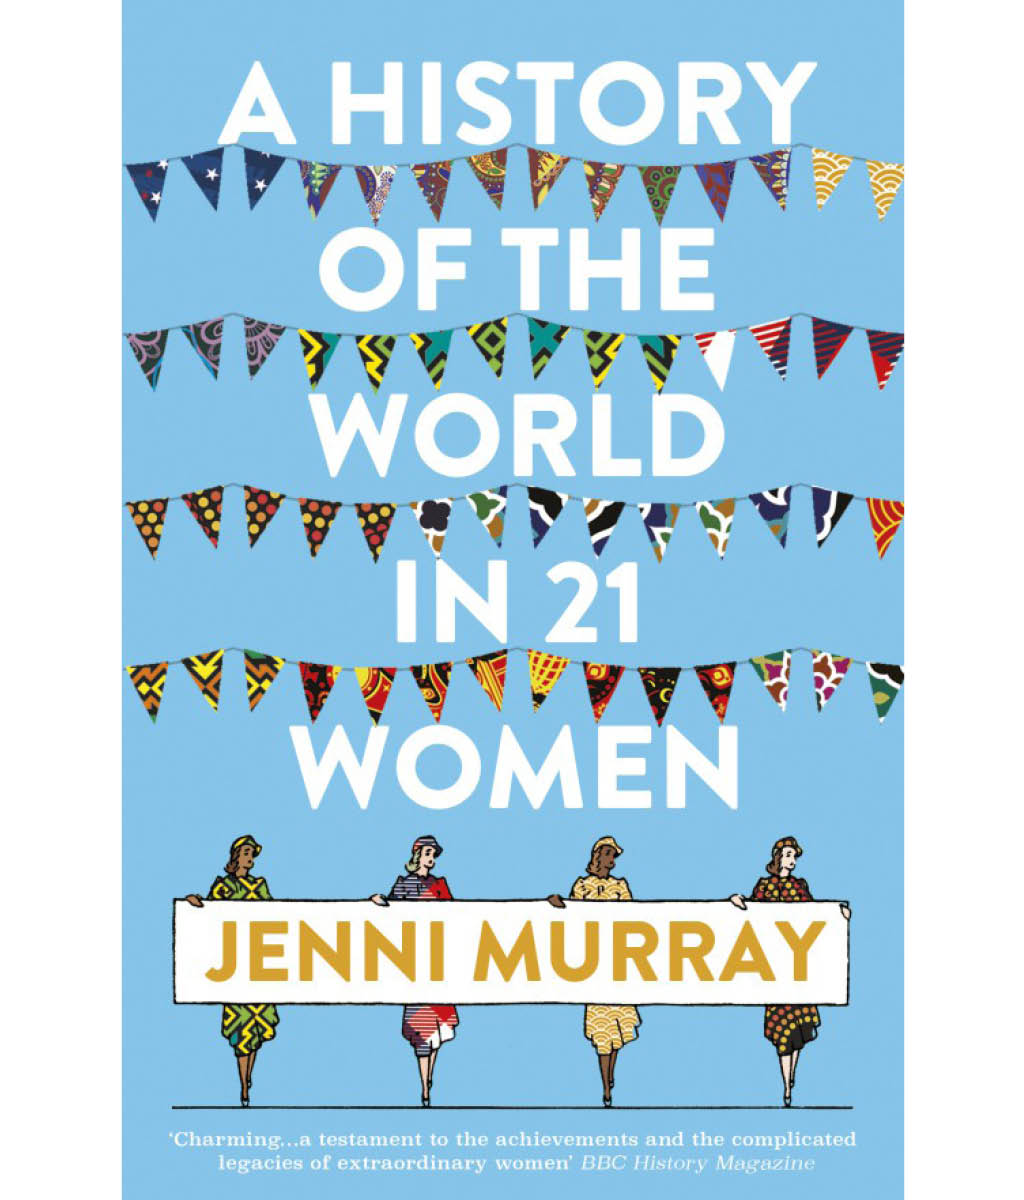 A history of the world in 21 Women Jenni Murray